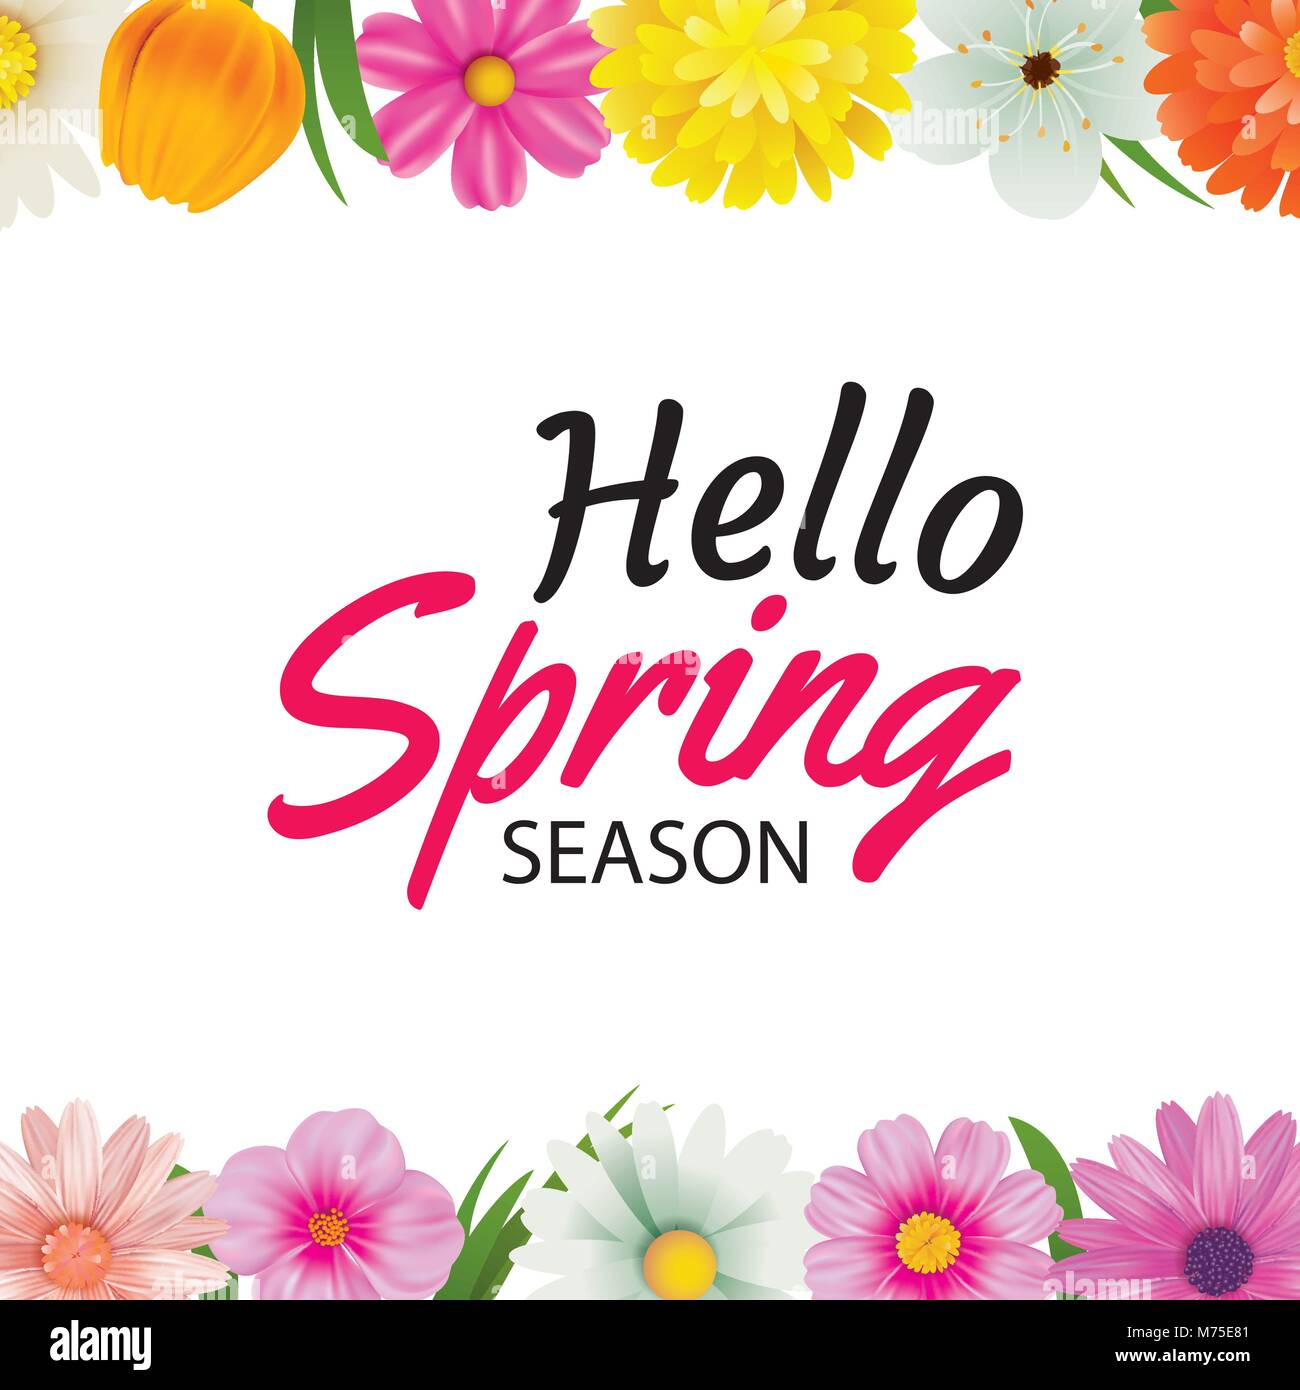 Hello spring season greeting card with colorful flower frame stock hello spring season greeting card with colorful flower frame background template can be use voucher kristyandbryce Choice Image